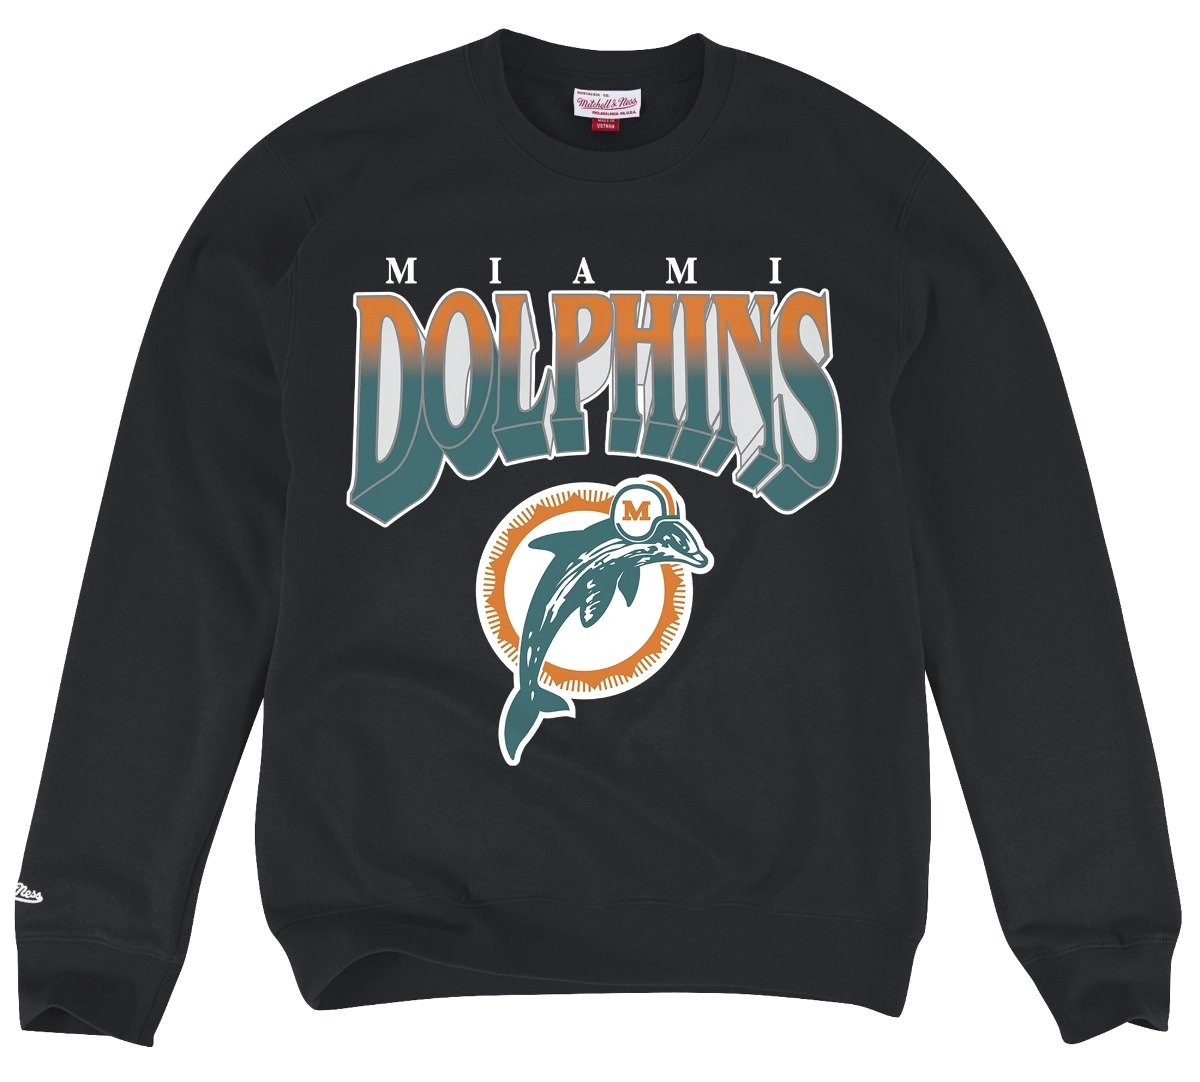 384706b4 Amazon.com : Miami Dolphins Mitchell & Ness NFL